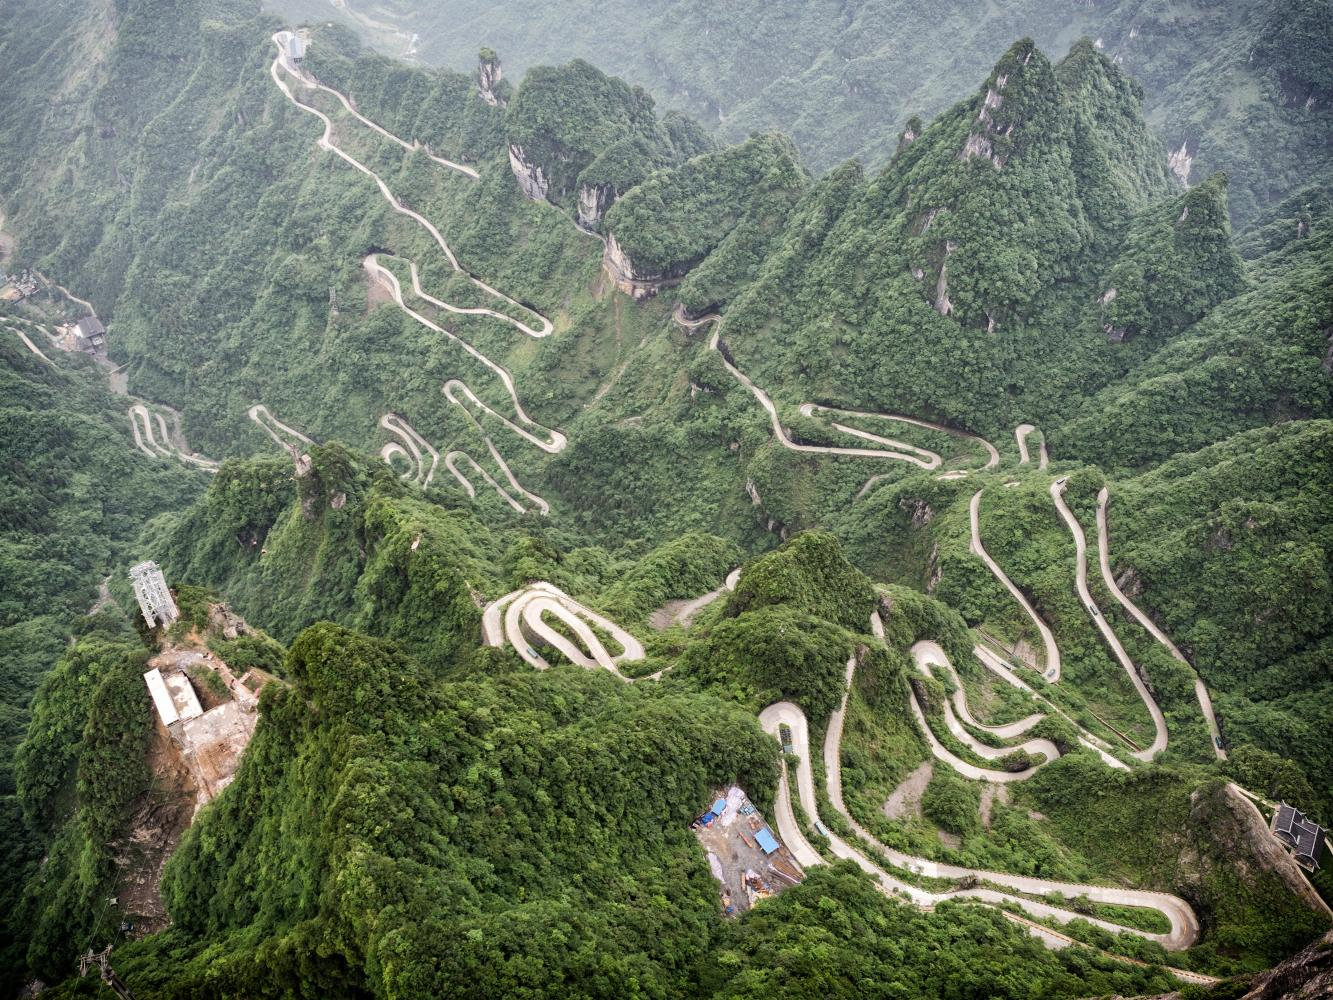 Tianmen Mountain road Bike Climb - PJAMM Cycling